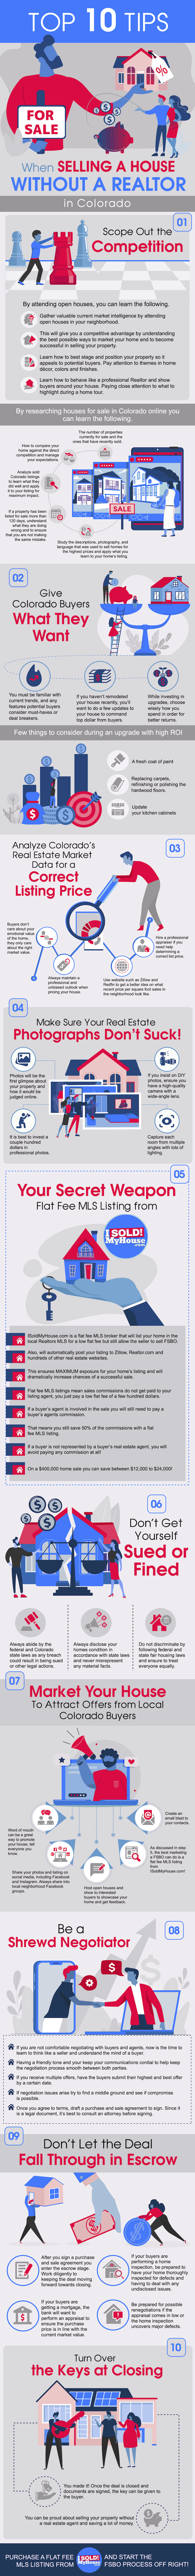 infographic of the 10 steps to sell a house in colorado without an agent